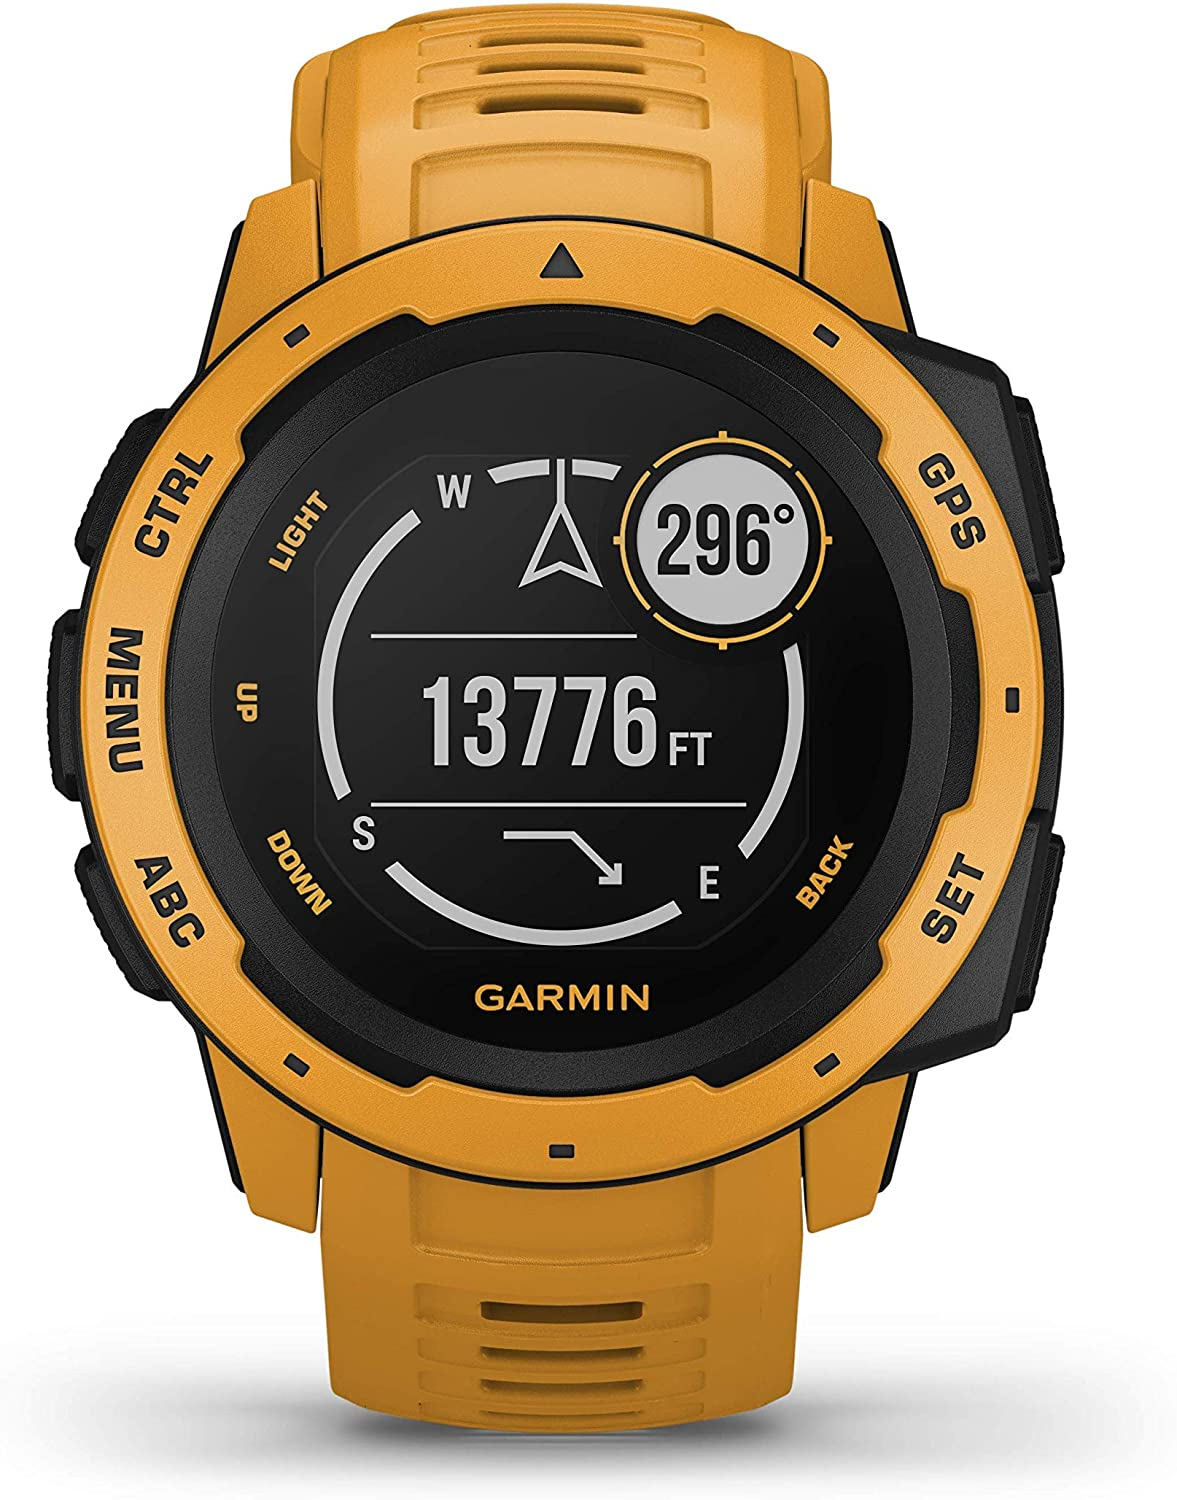 Permalink to Garmin Instinct Rugged Outdoor GPS Watch Features Glonass and Galileo Heart Rate Monitoring and 3-Axis Compass Smart Watch